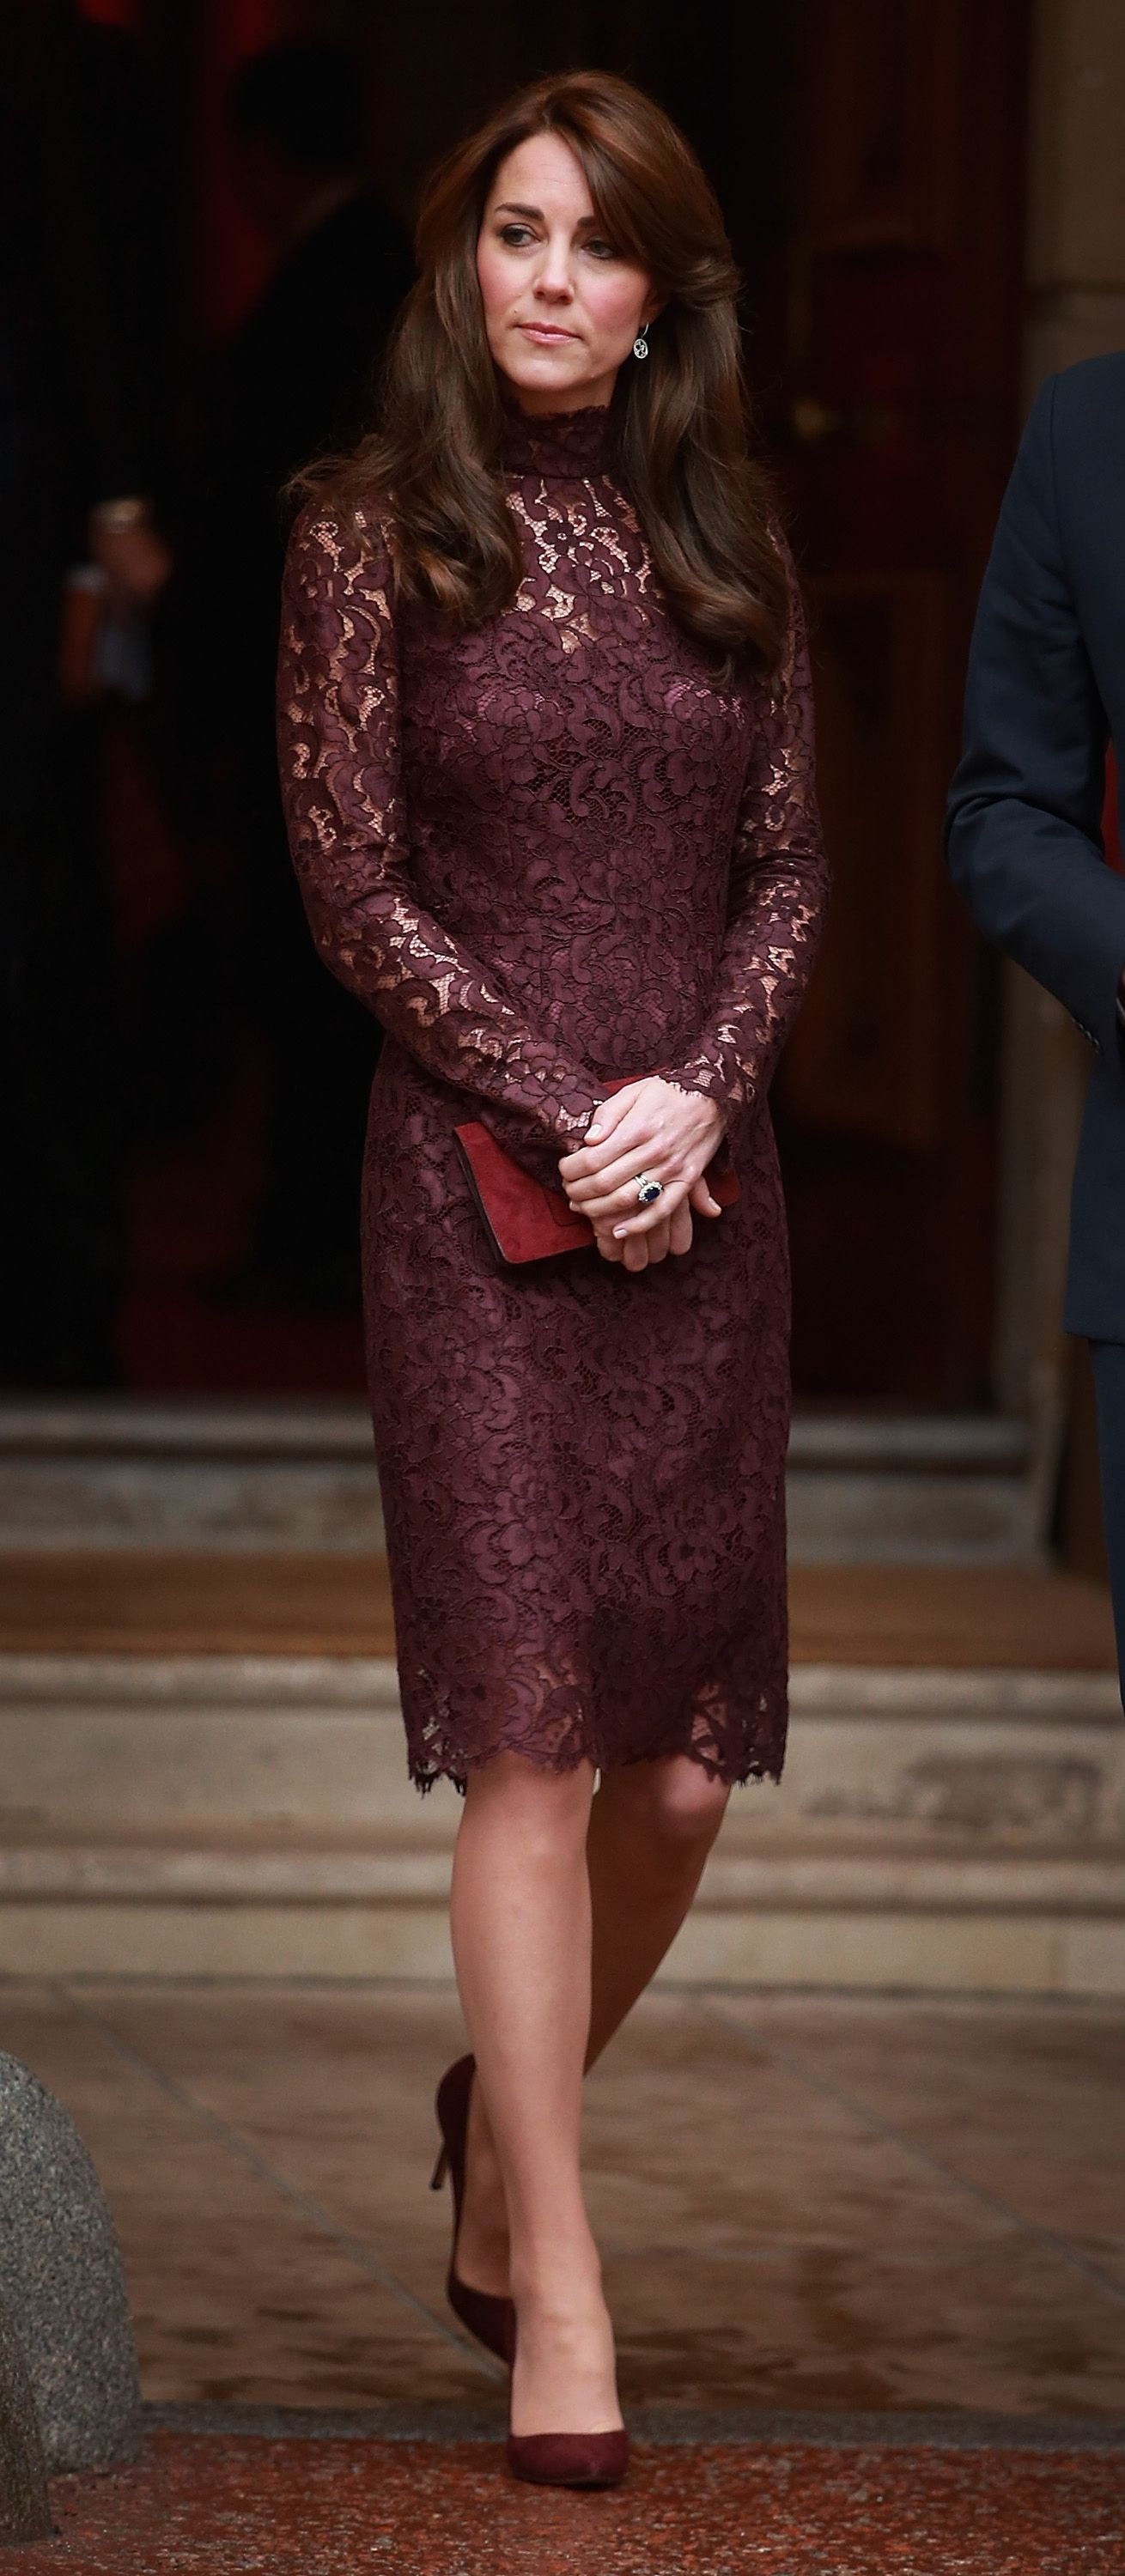 Lace dress kate middleton  The Duchess of Cambridgeus Lace Dress Is Just as Dreamy as Her Gowns